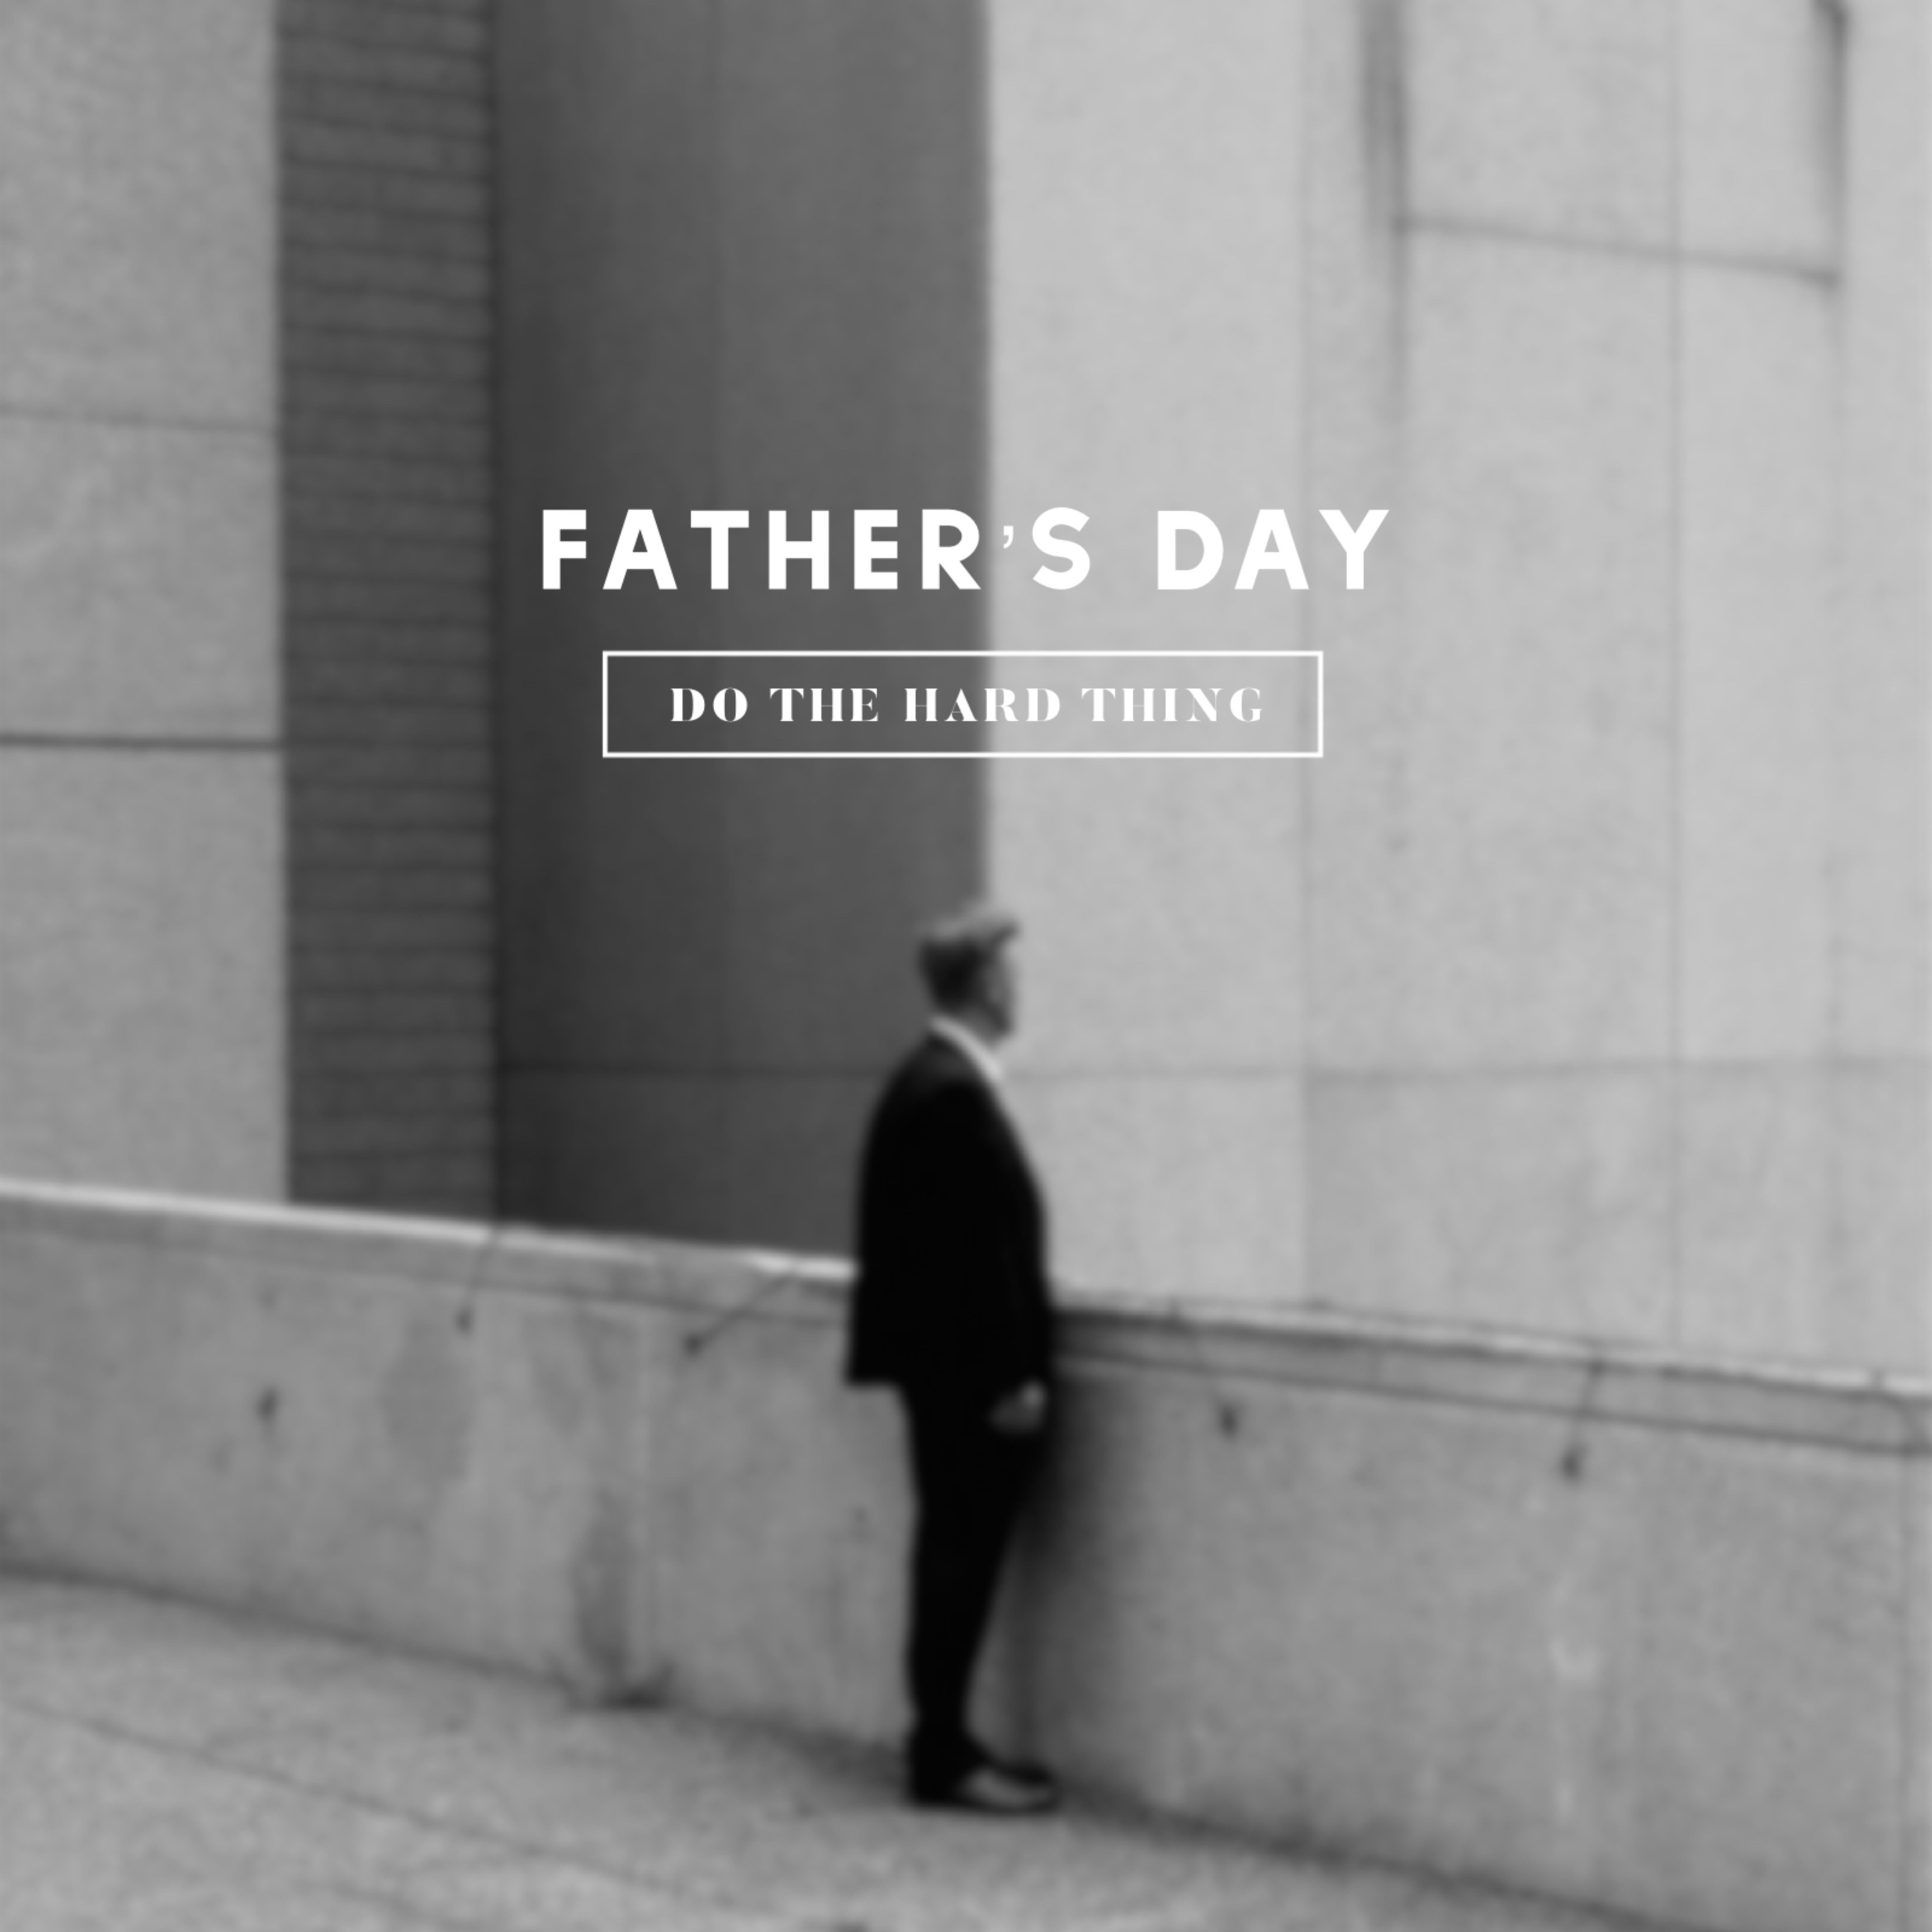 Father's Day | Sunday - June 17, 2018